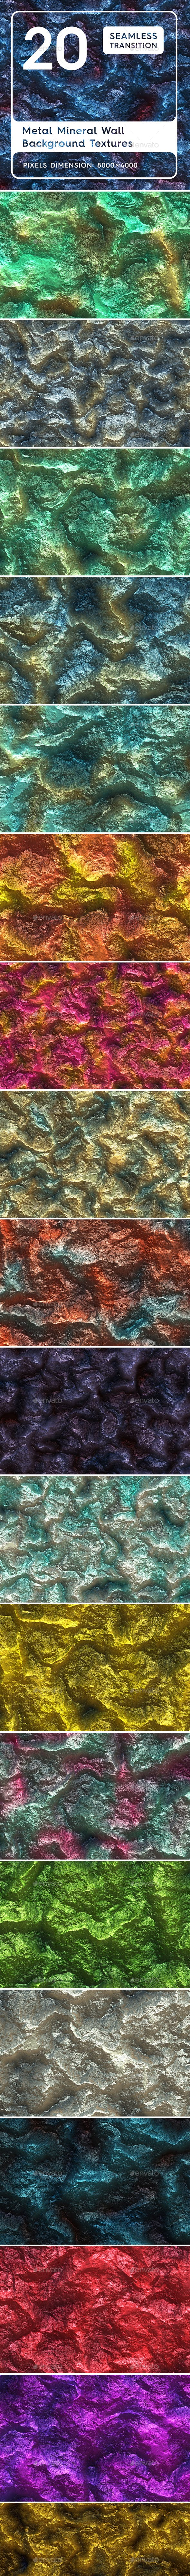 20 Metal Mineral Wall Background Textures - 3DOcean Item for Sale